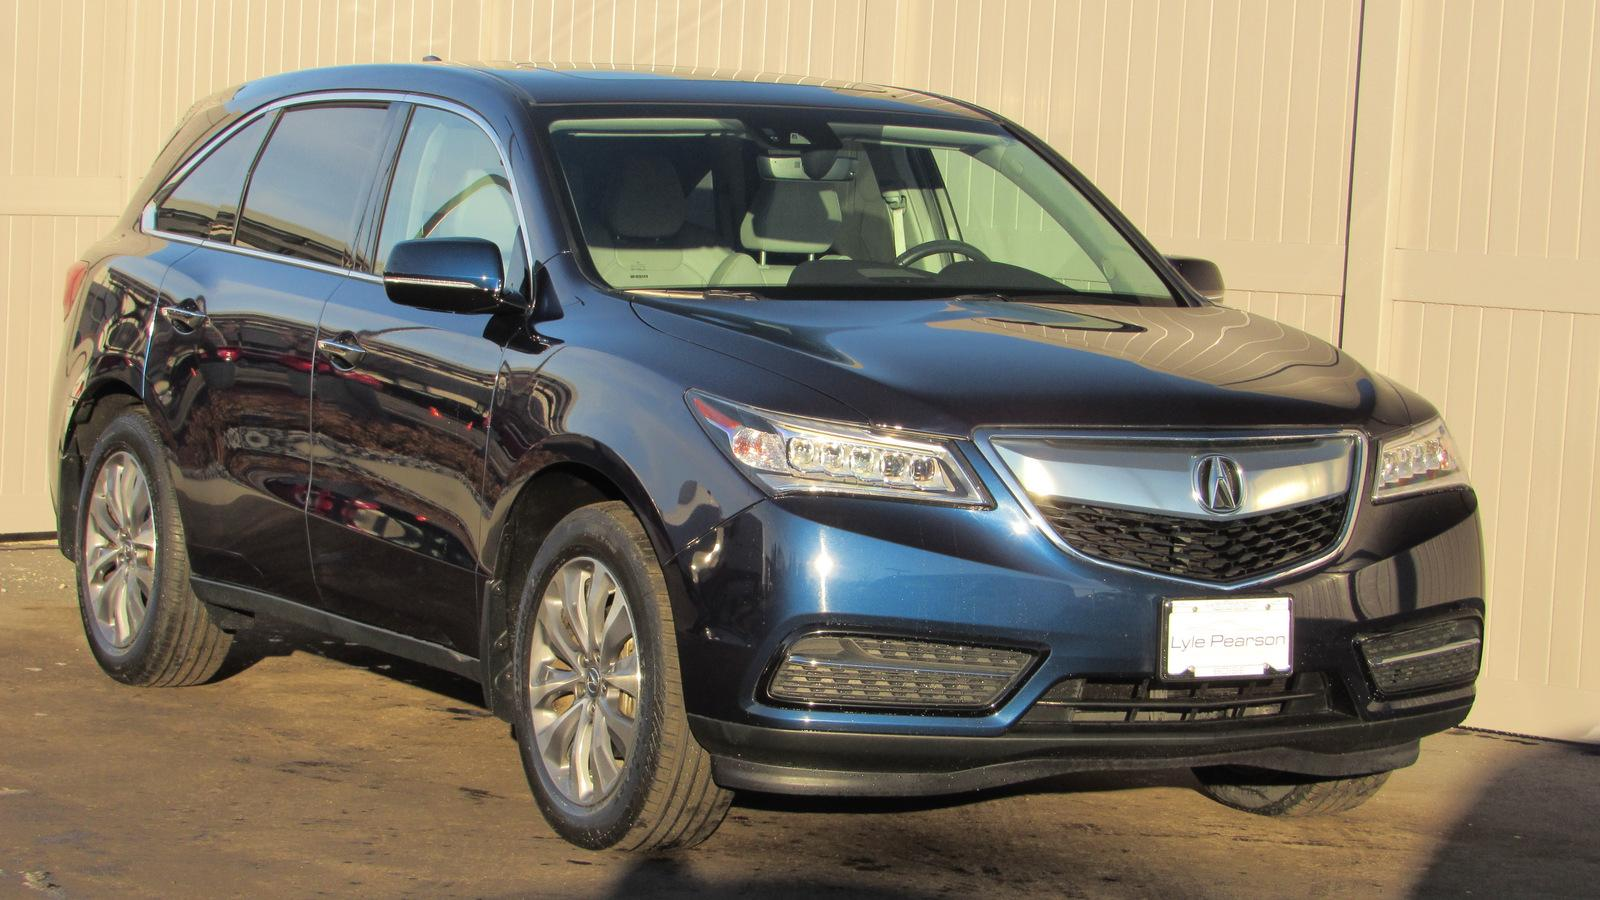 Certified Pre-Owned 2016 Acura MDX SH-AWD 4dr w/Tech/AcuraWatch Plus